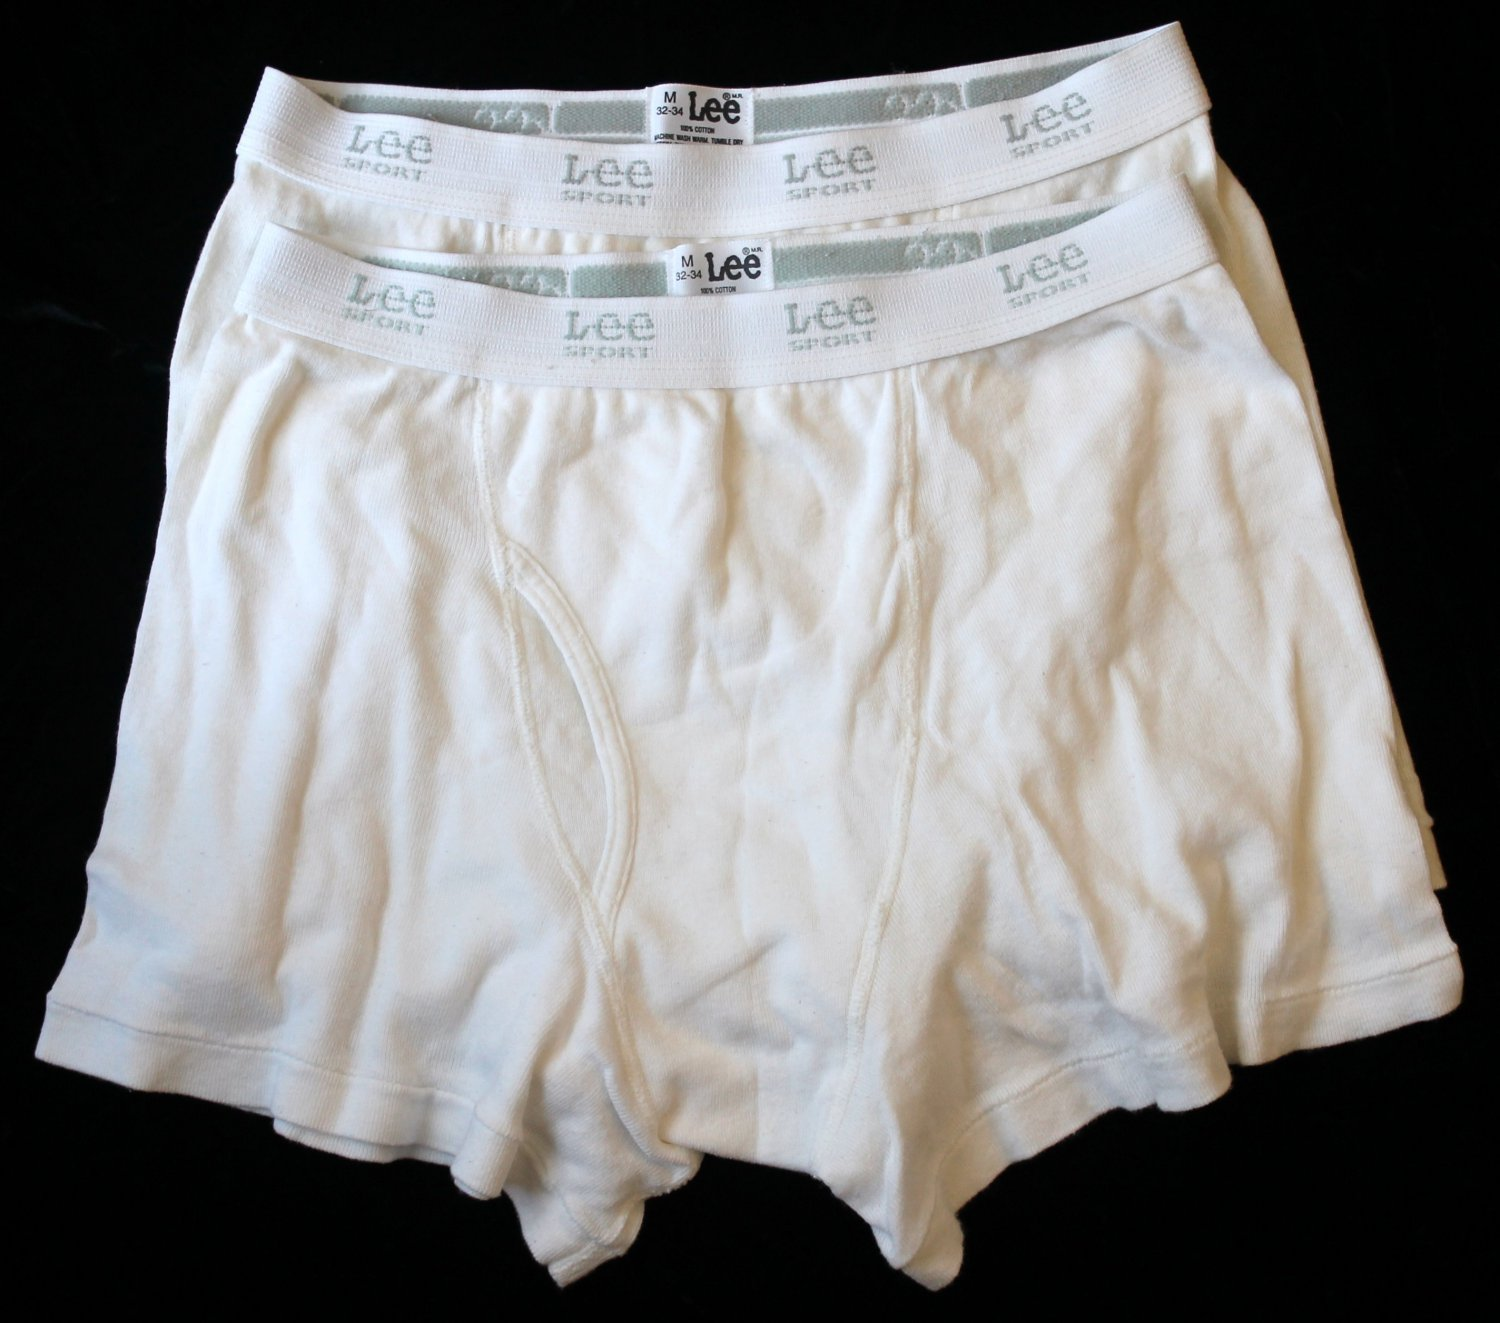 Lee Men's 2 Pair Underwear White Western Boxer  Briefs Medium 32-34